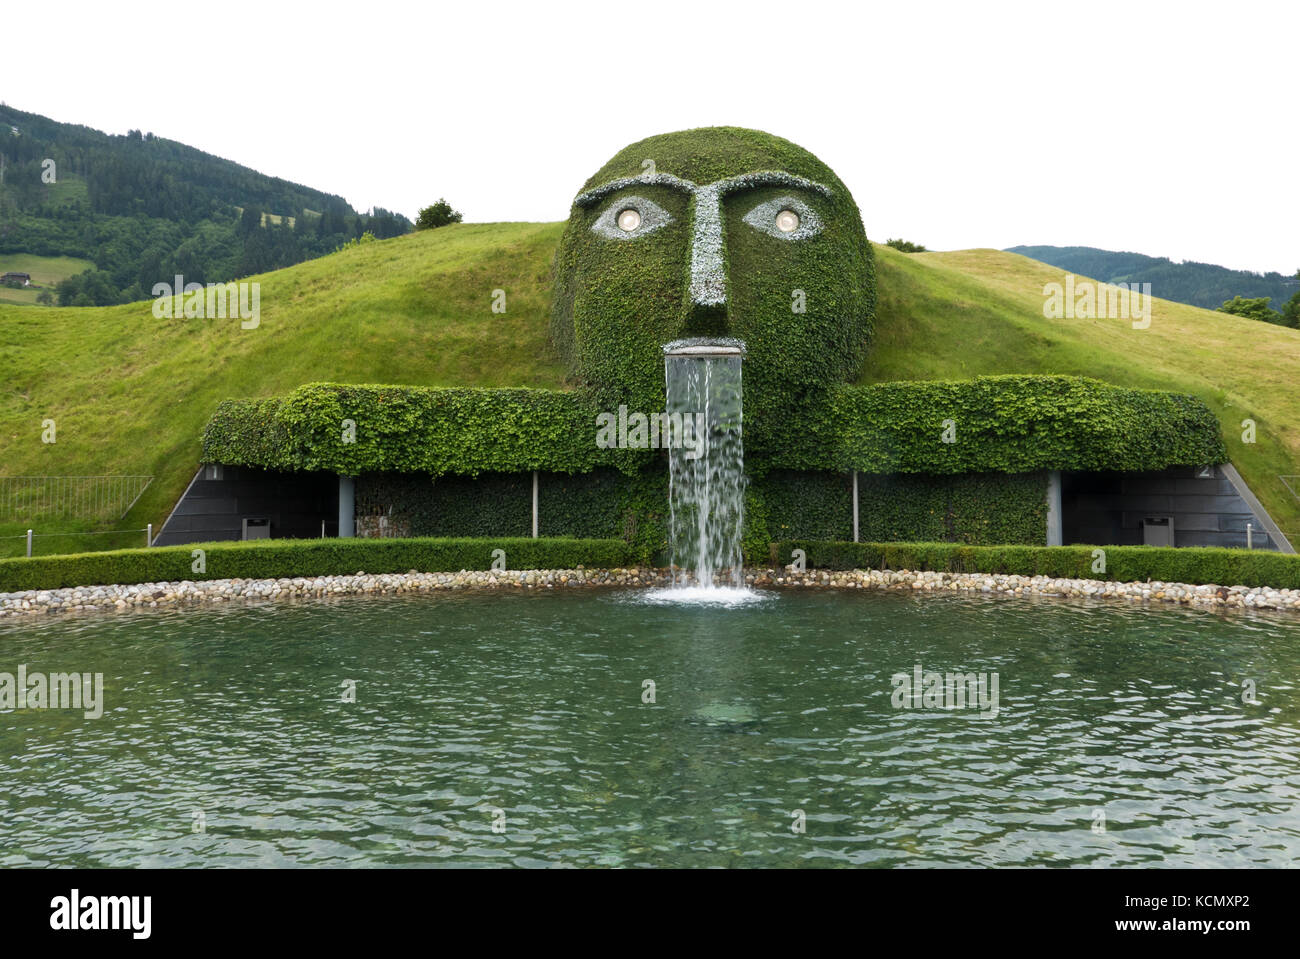 ca818013226056 The Giant face at the entrance to the Swarovski Crystal Worlds Stock ...